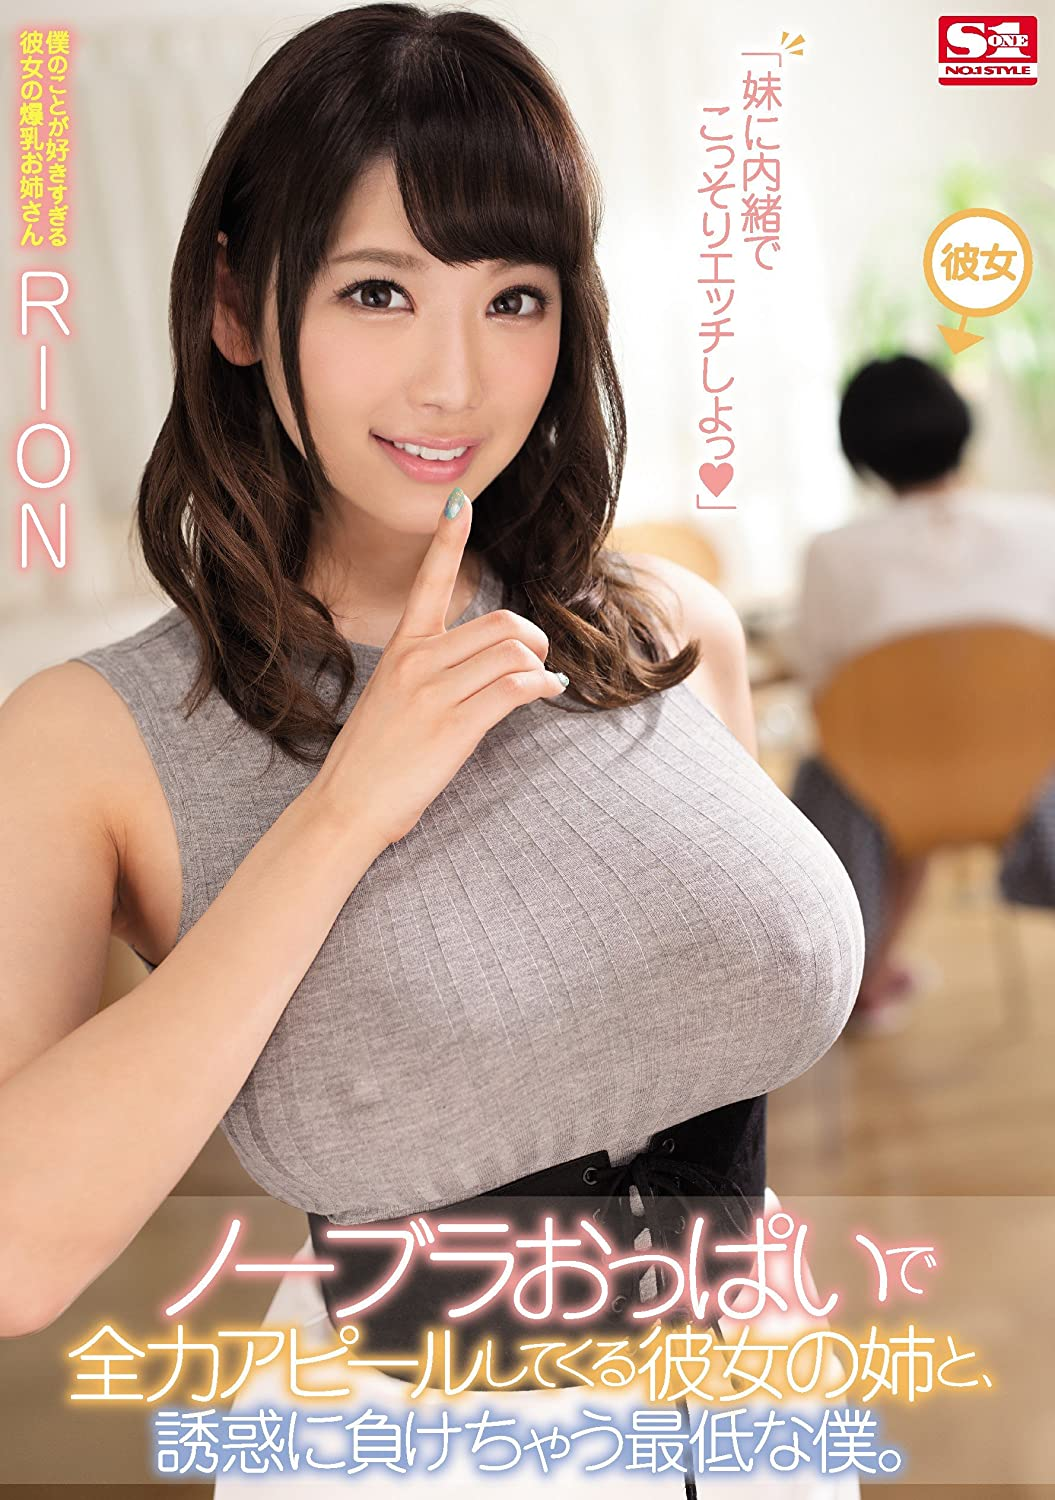 [SSNI-241] (English subbed) (Full) My Girlfriend's Big Sister Is Prancing Around Without Her Bra On, Trying With All Her Might To Seduce Me, And I Gave In To Her Temptation, Because I'm A Piece Of Shit RION